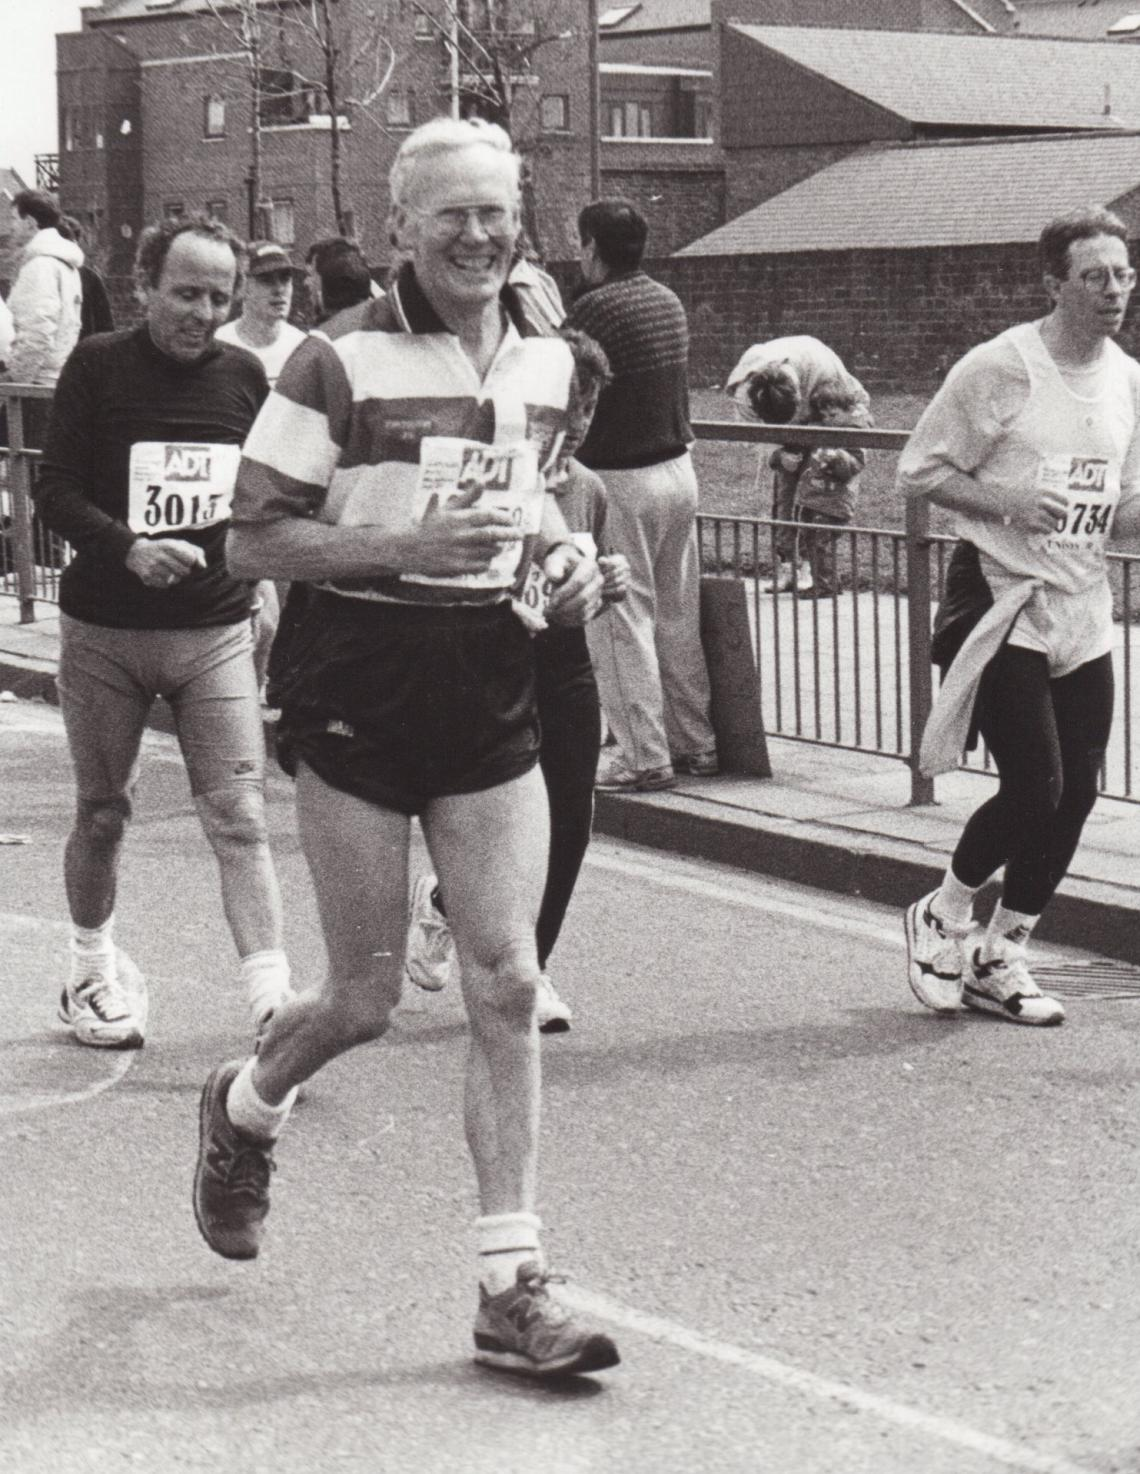 In his latter years Cyril took to road running and completed many marathons